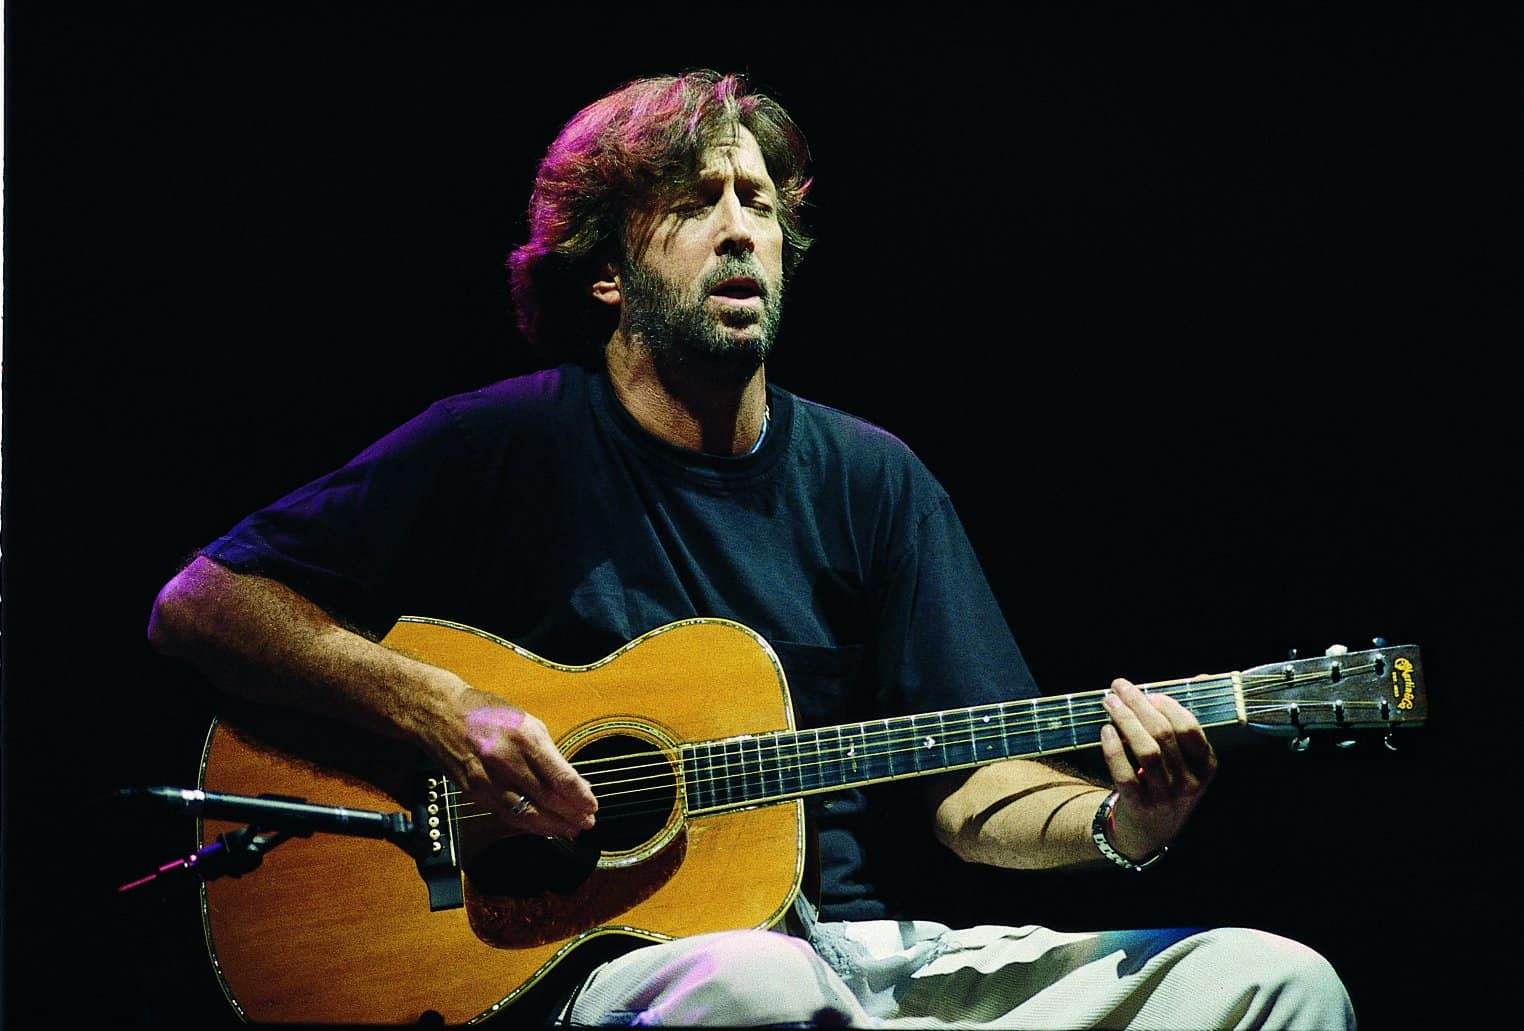 Most Expensive Guitar: Eric Clapton's Martin 1939 000-42 Acoustic